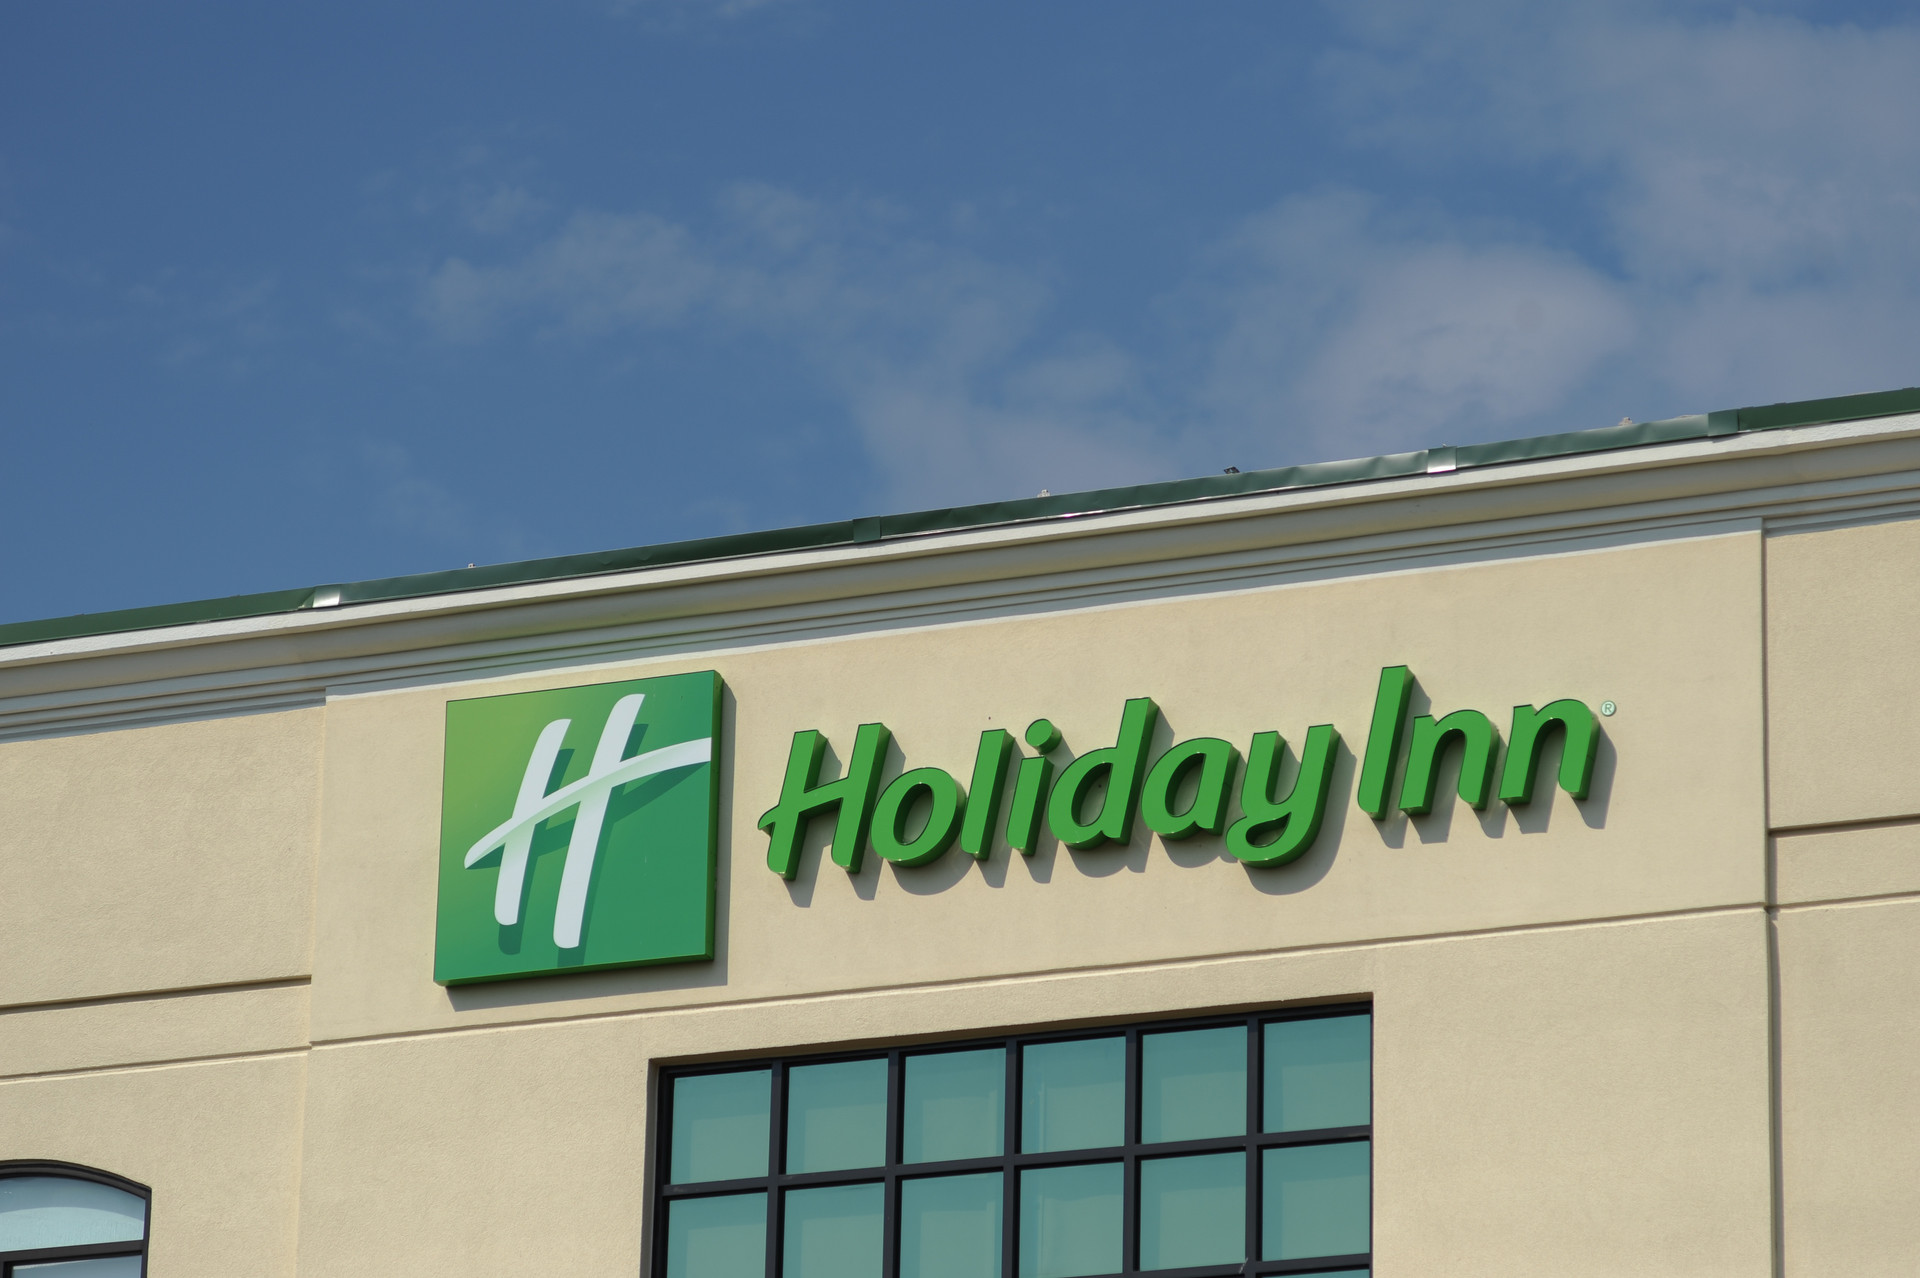 Holiday.Signage.TIMSNYDERPHOTO2020-6.jpg